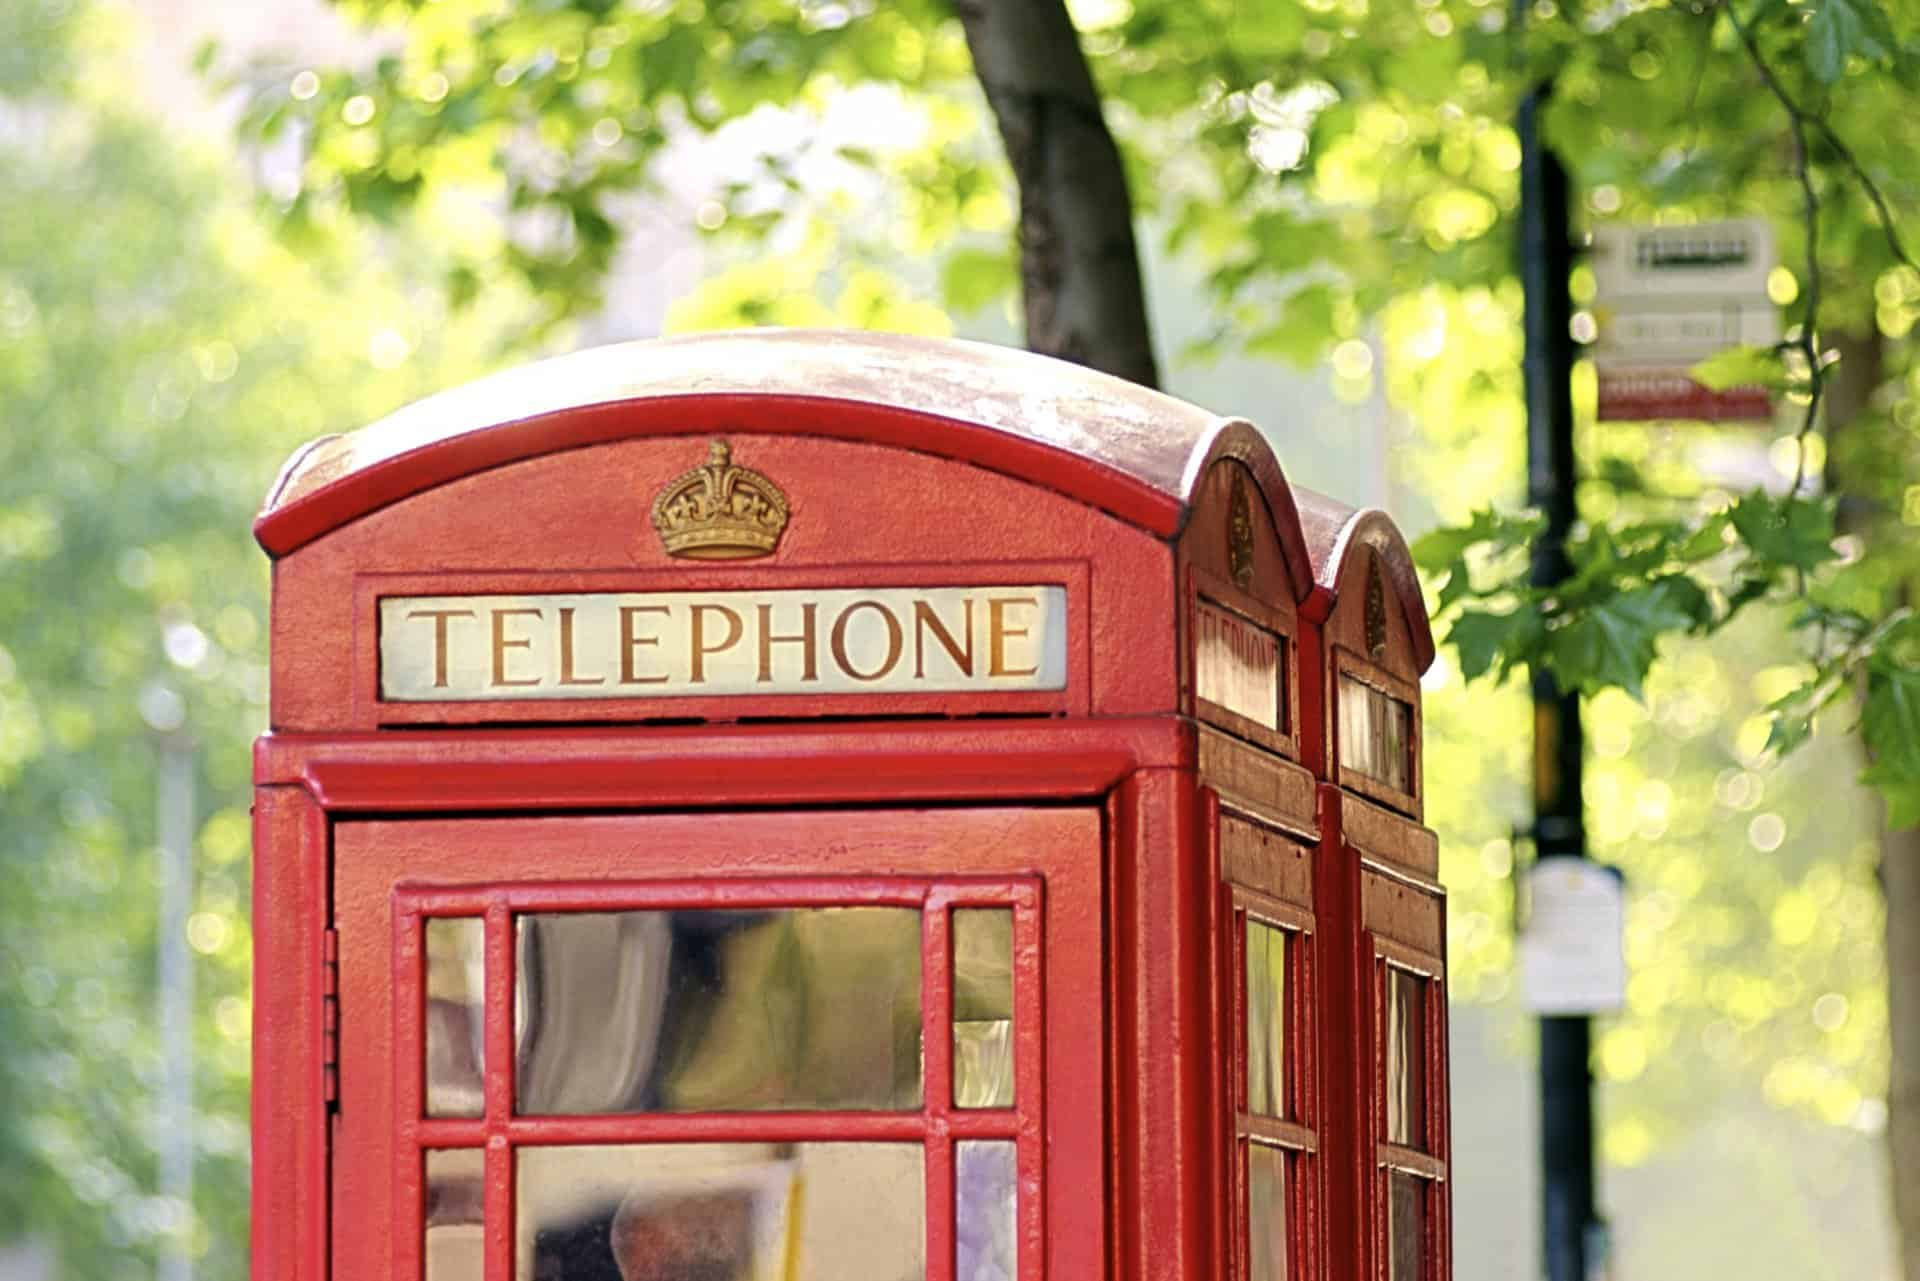 london-phone-booth-london-phone-booth-england-urban-england-town